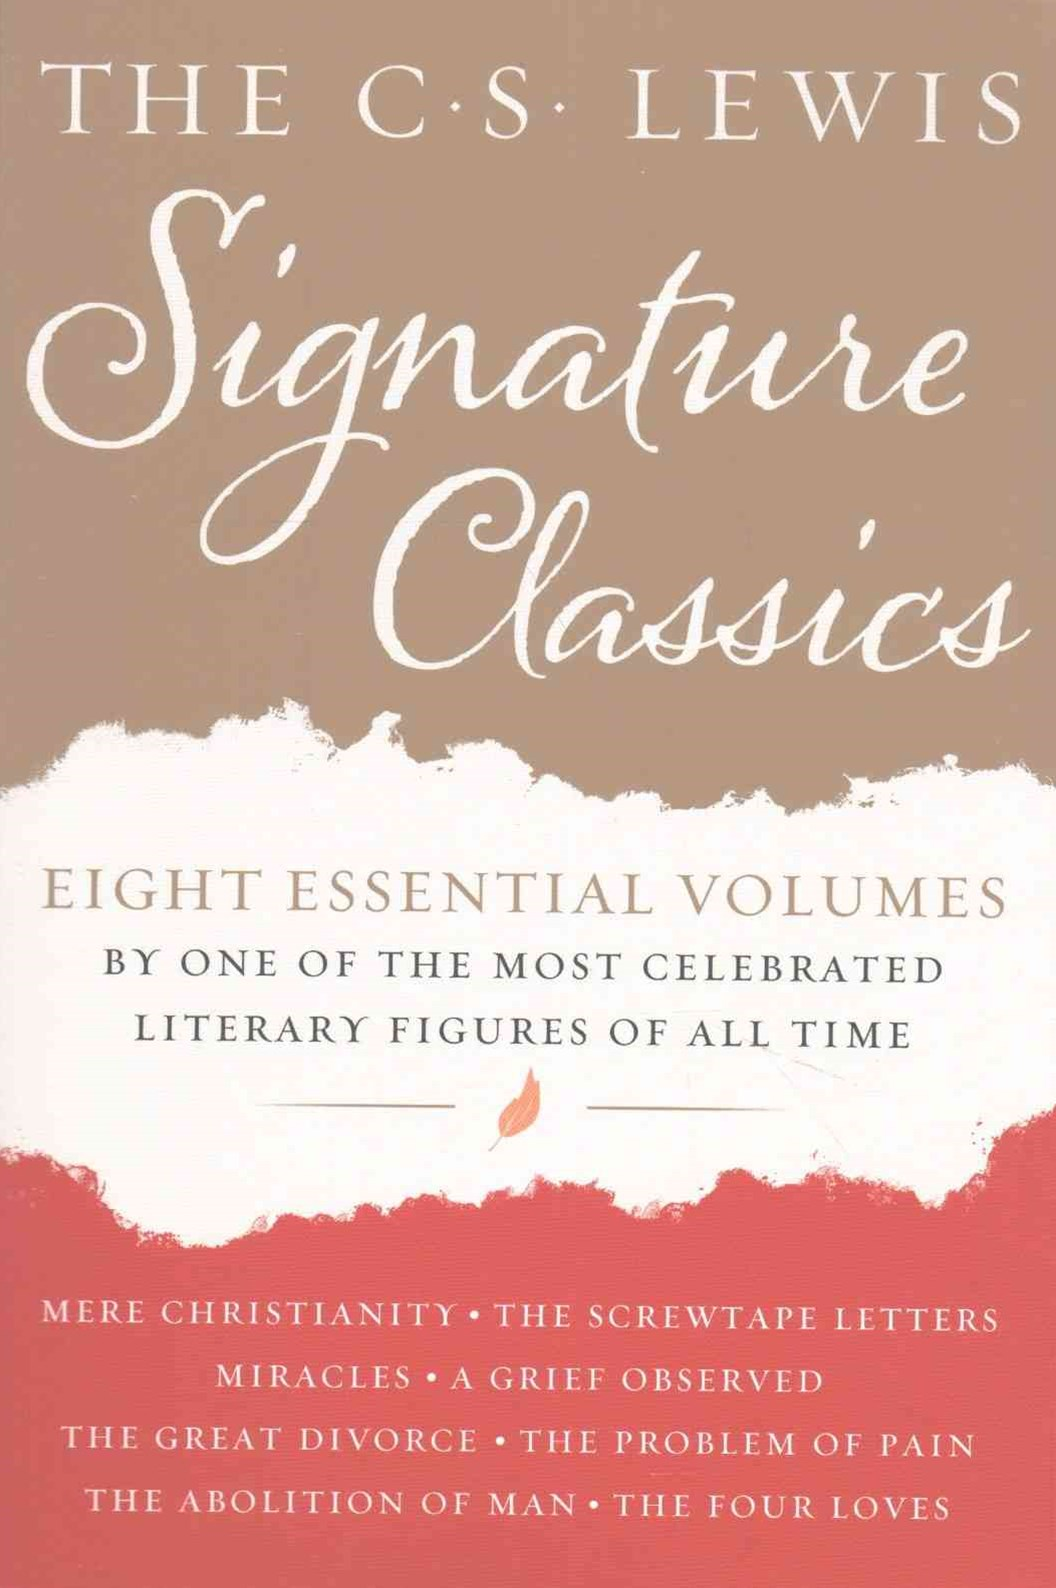 The C. S. Lewis Signature Classics (Box Set)